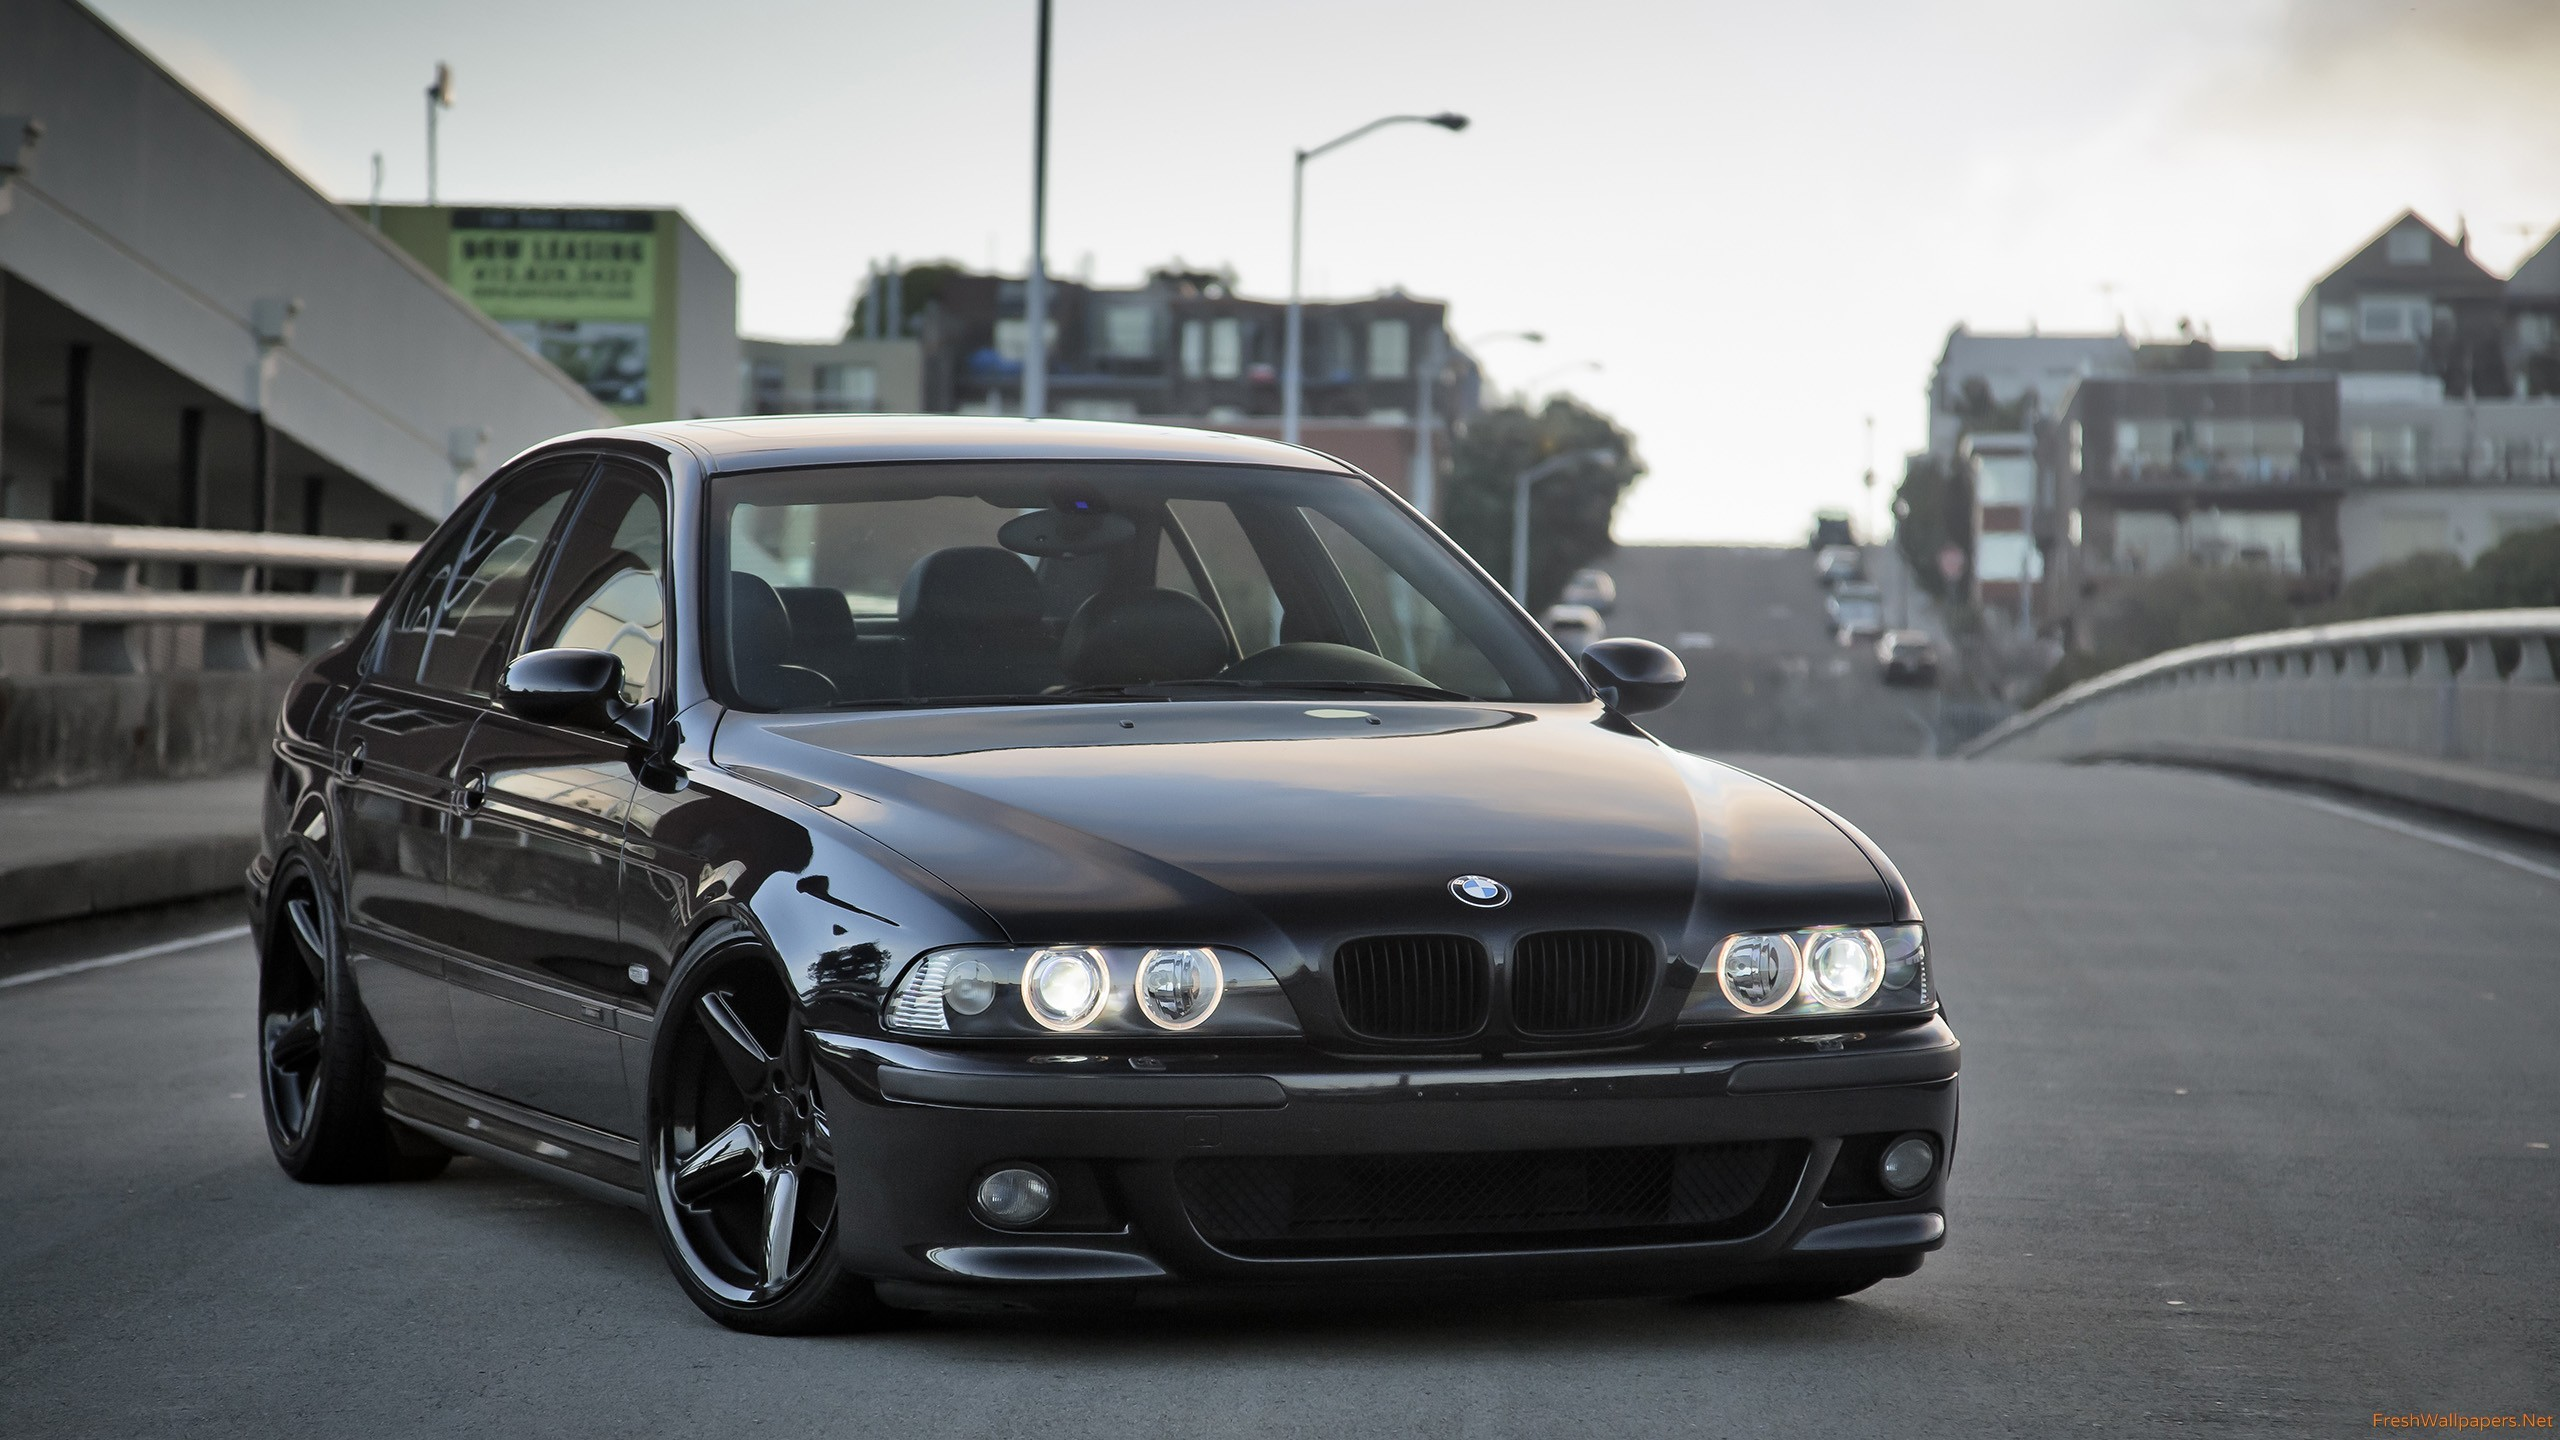 BMW E39 Wallpapers - Top Free BMW E39 Backgrounds ...